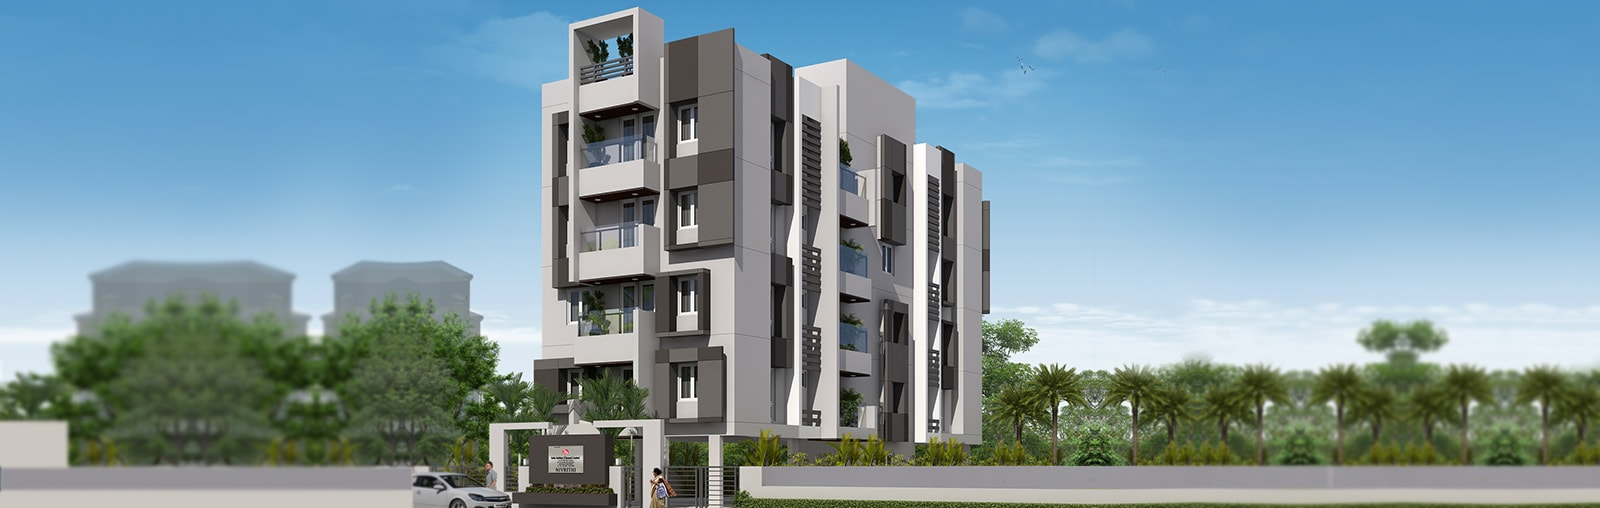 Apartments and Flats for Sale in Anna nagar